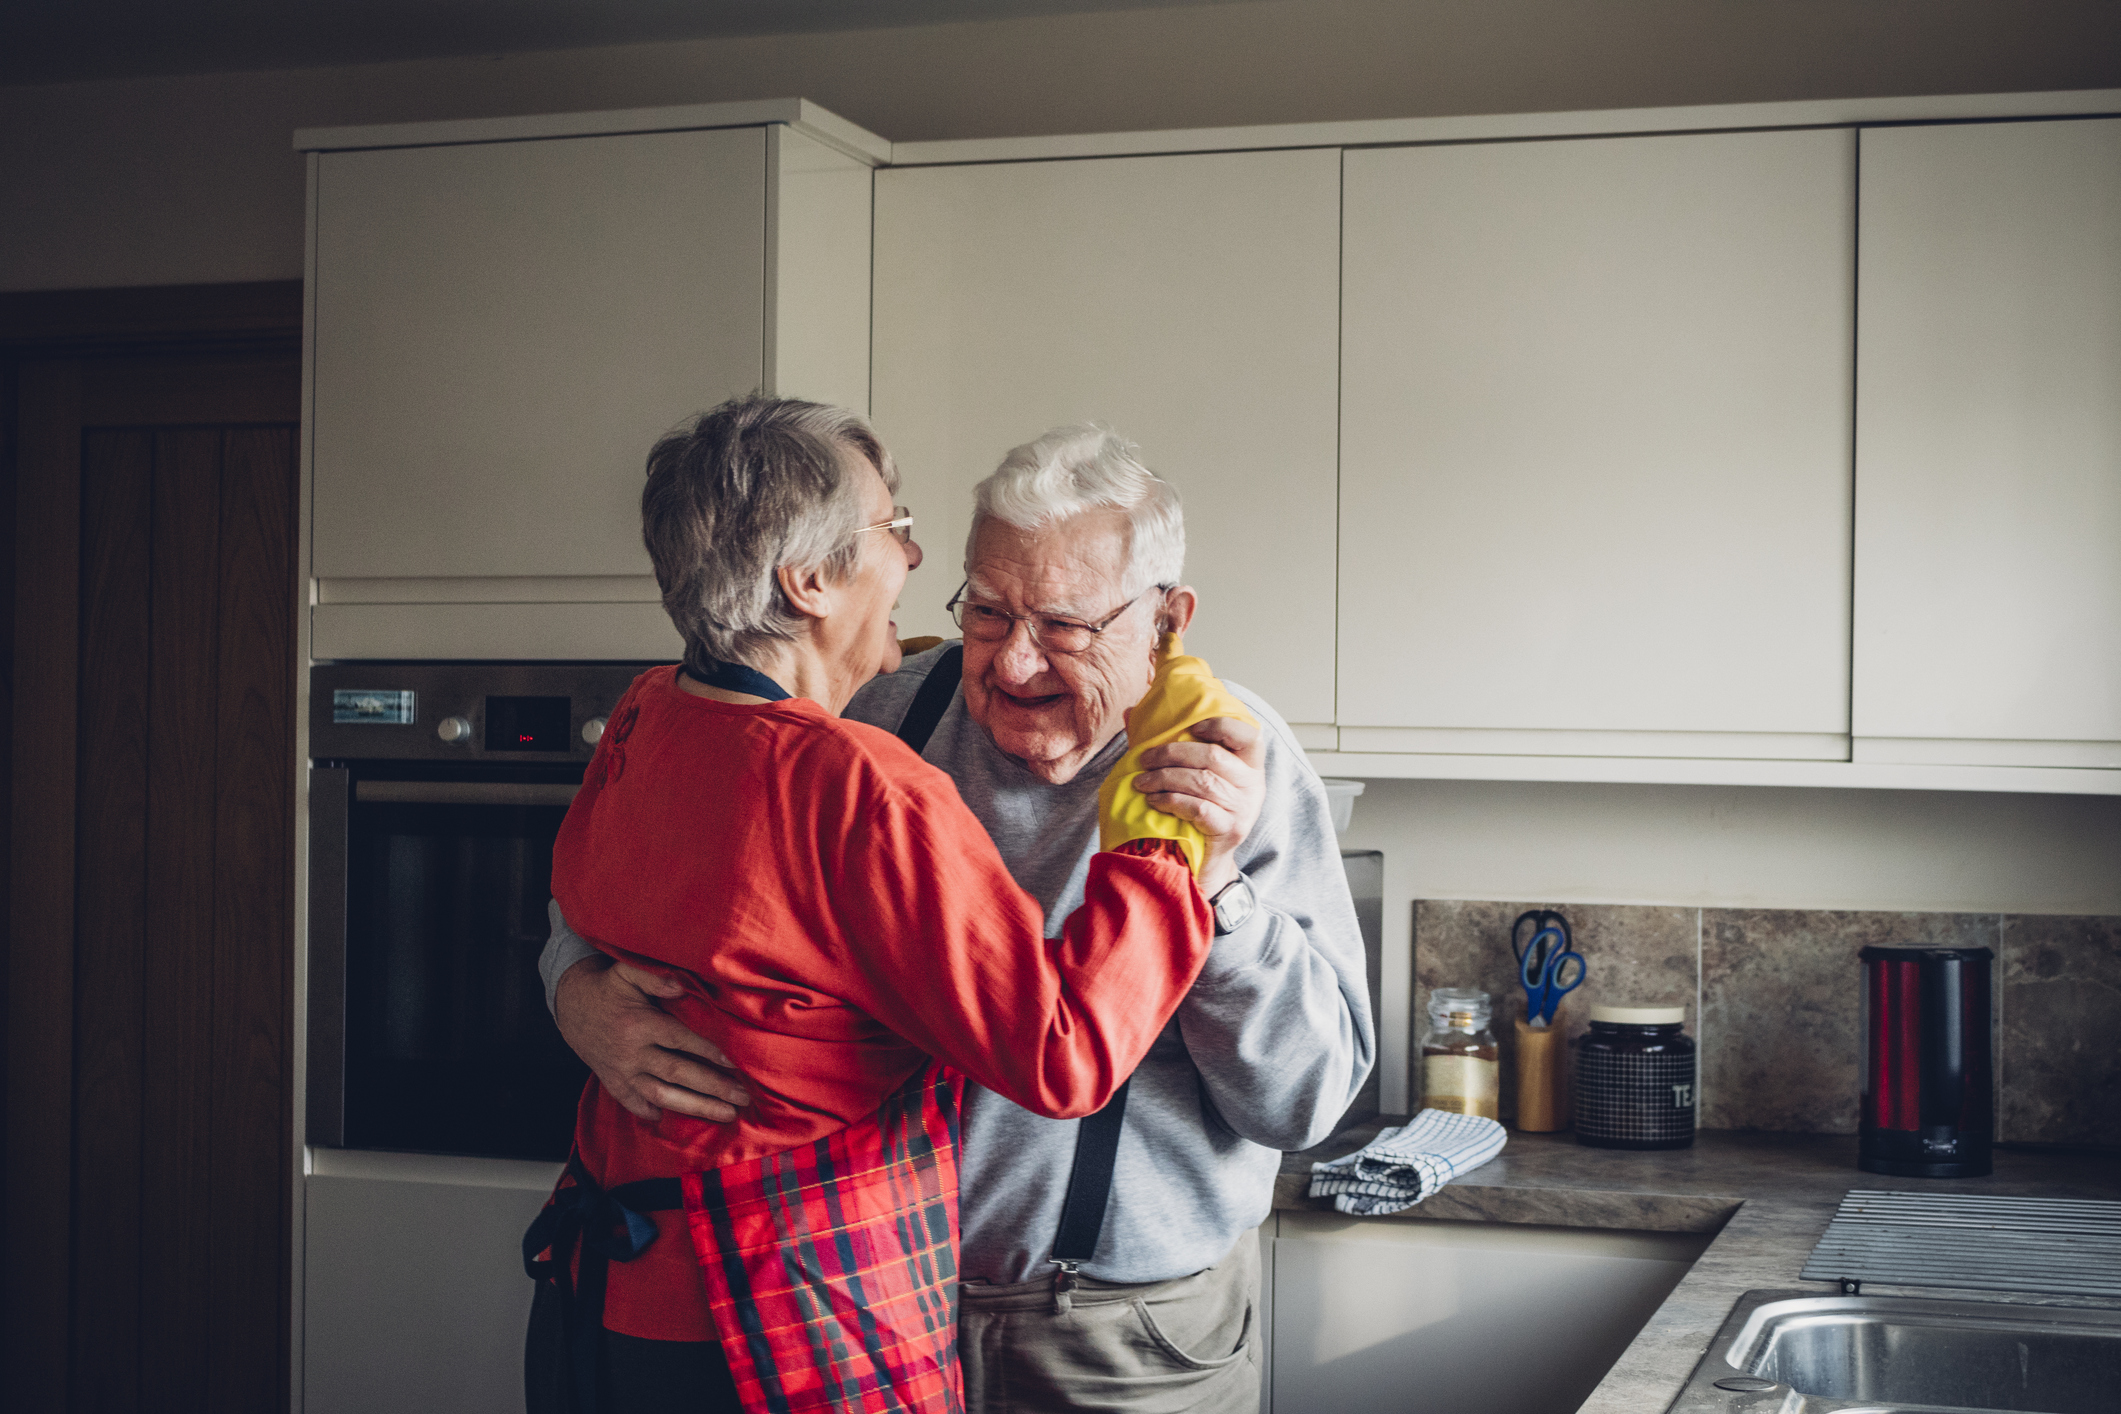 Will this be you still dancing around the kitchen together?